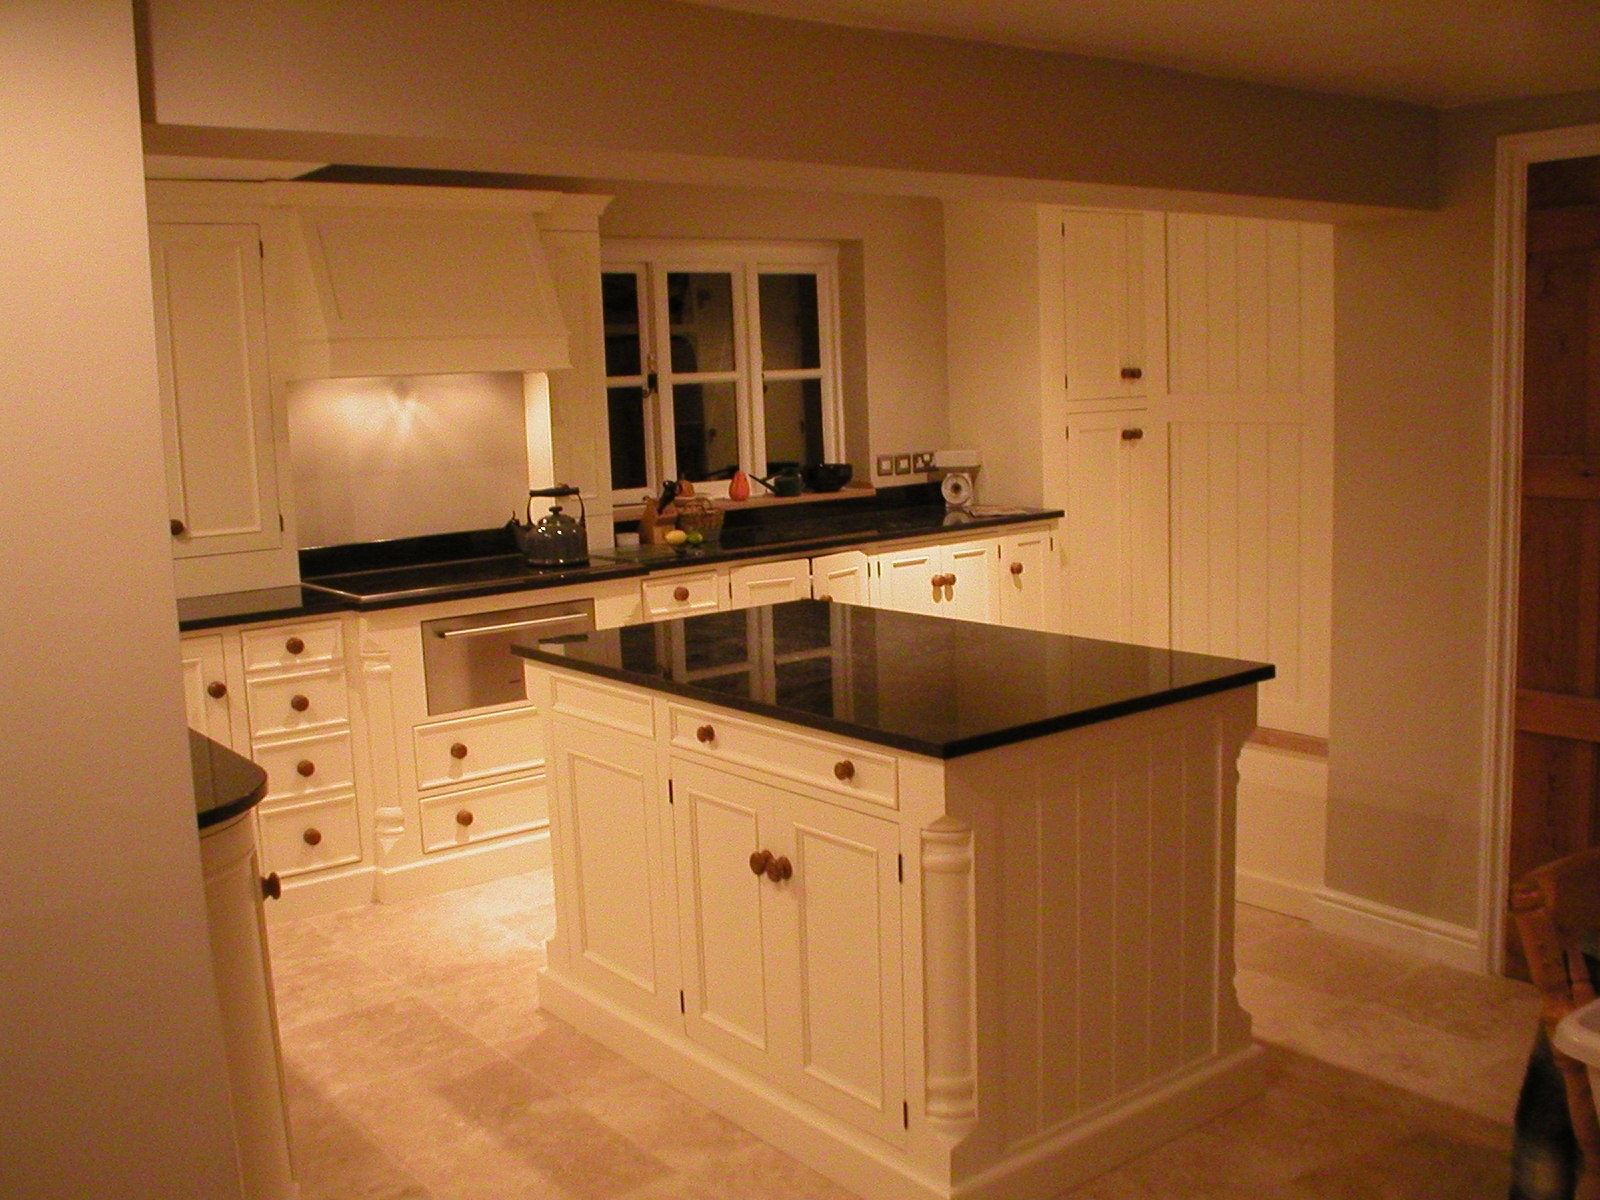 Bespoke kitchen units cabinets furniture handmade in kent for Kitchen design units